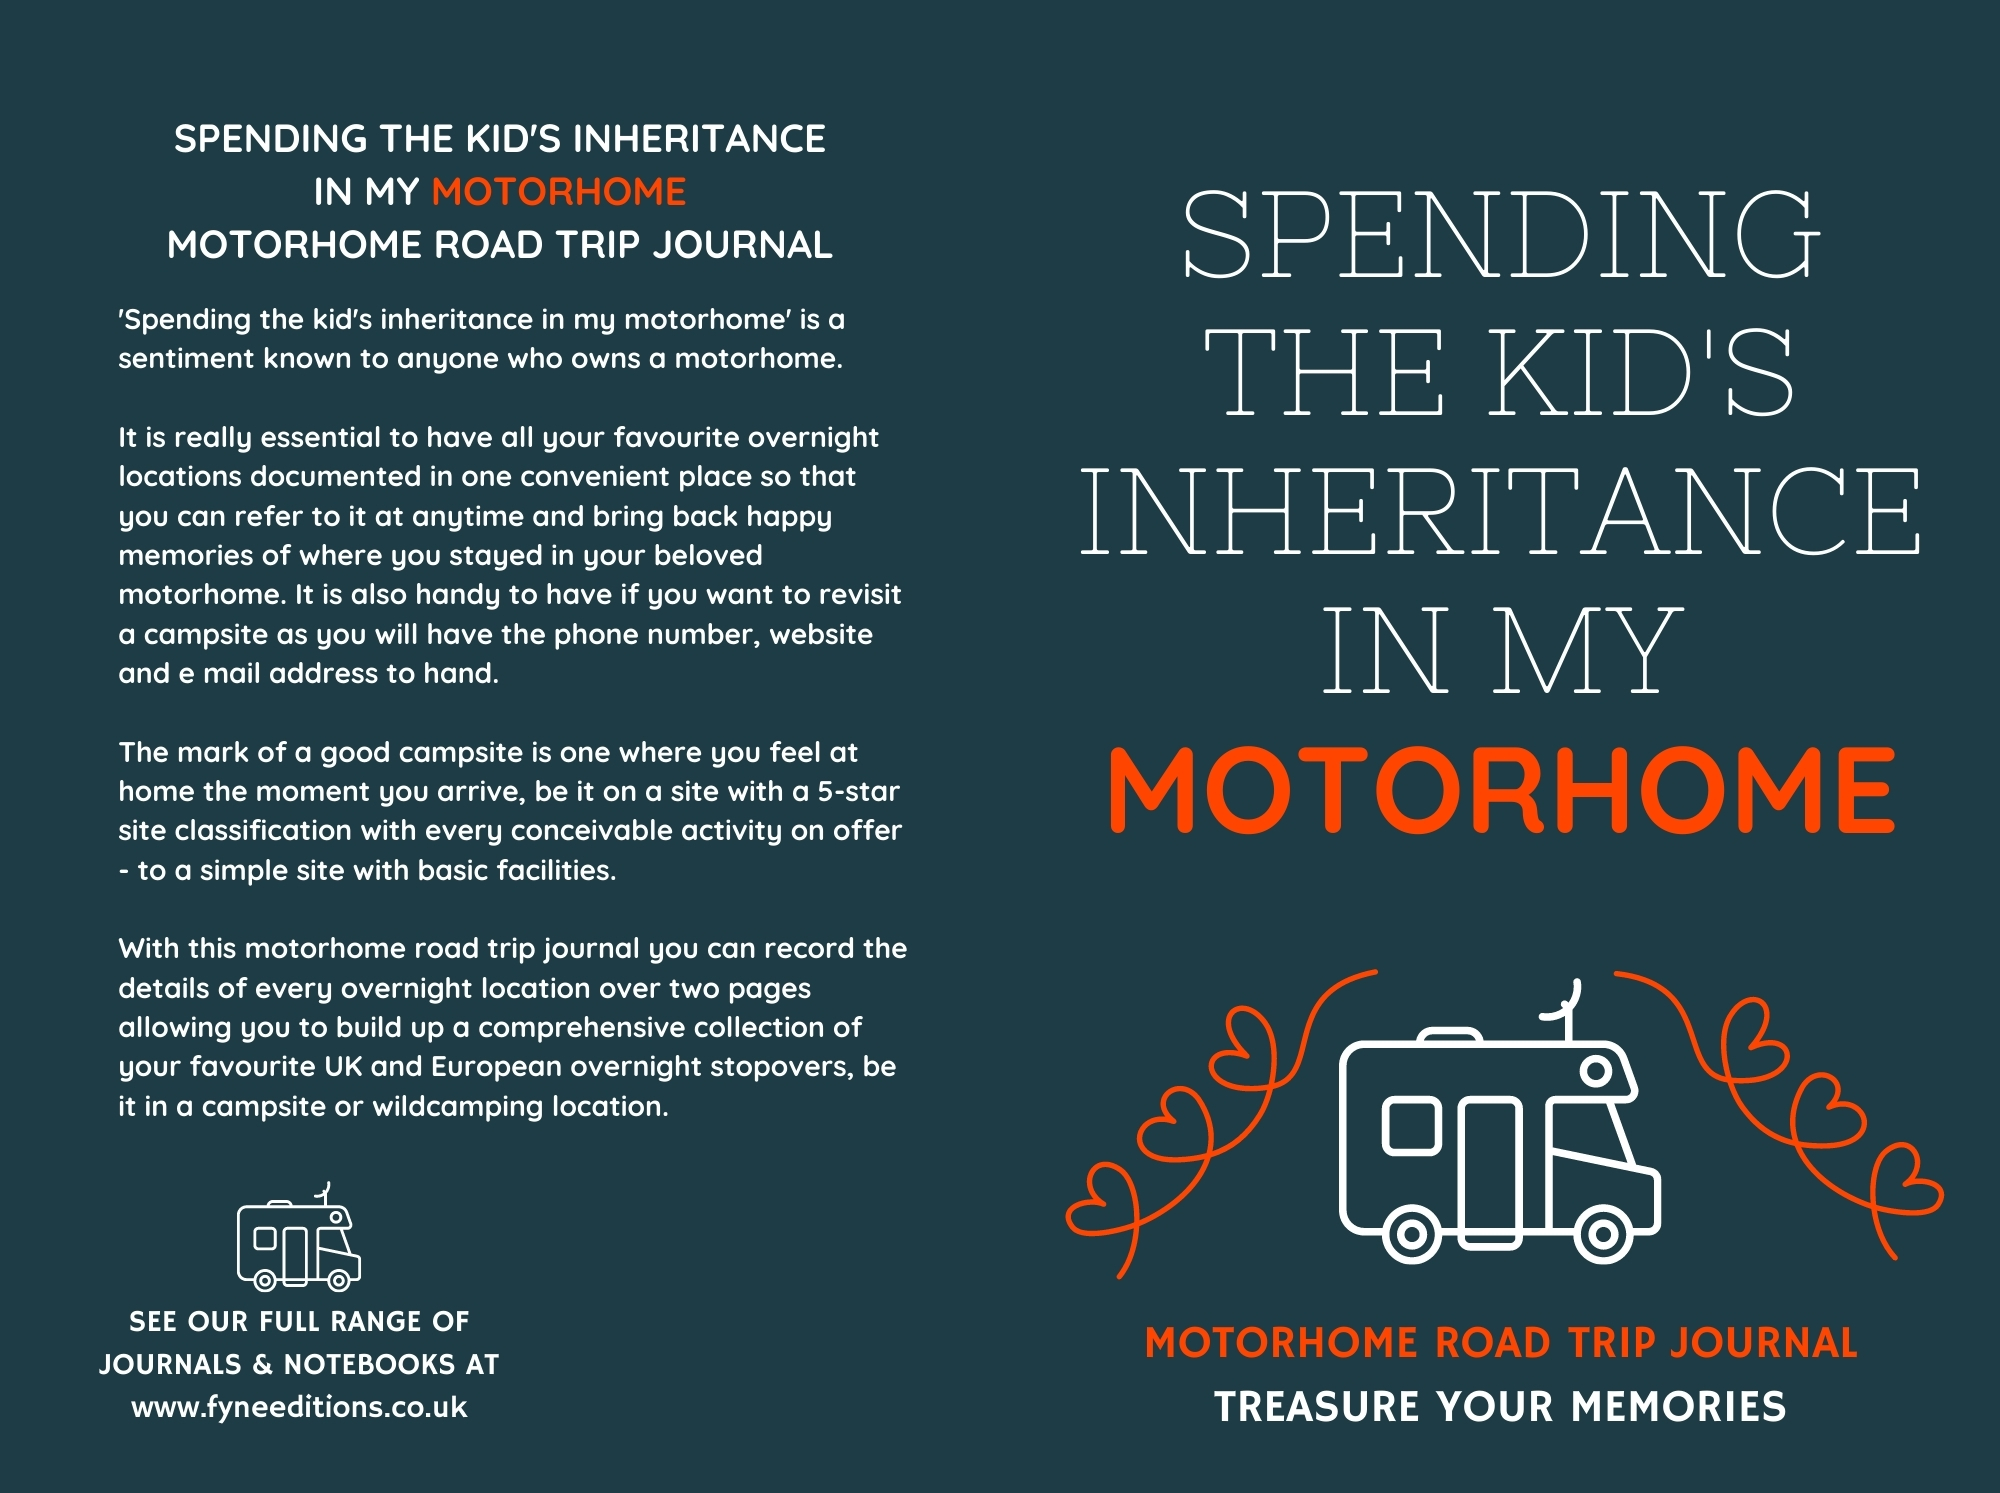 Spending The Kid's Inheritance In My Motorhome - Journal Cover